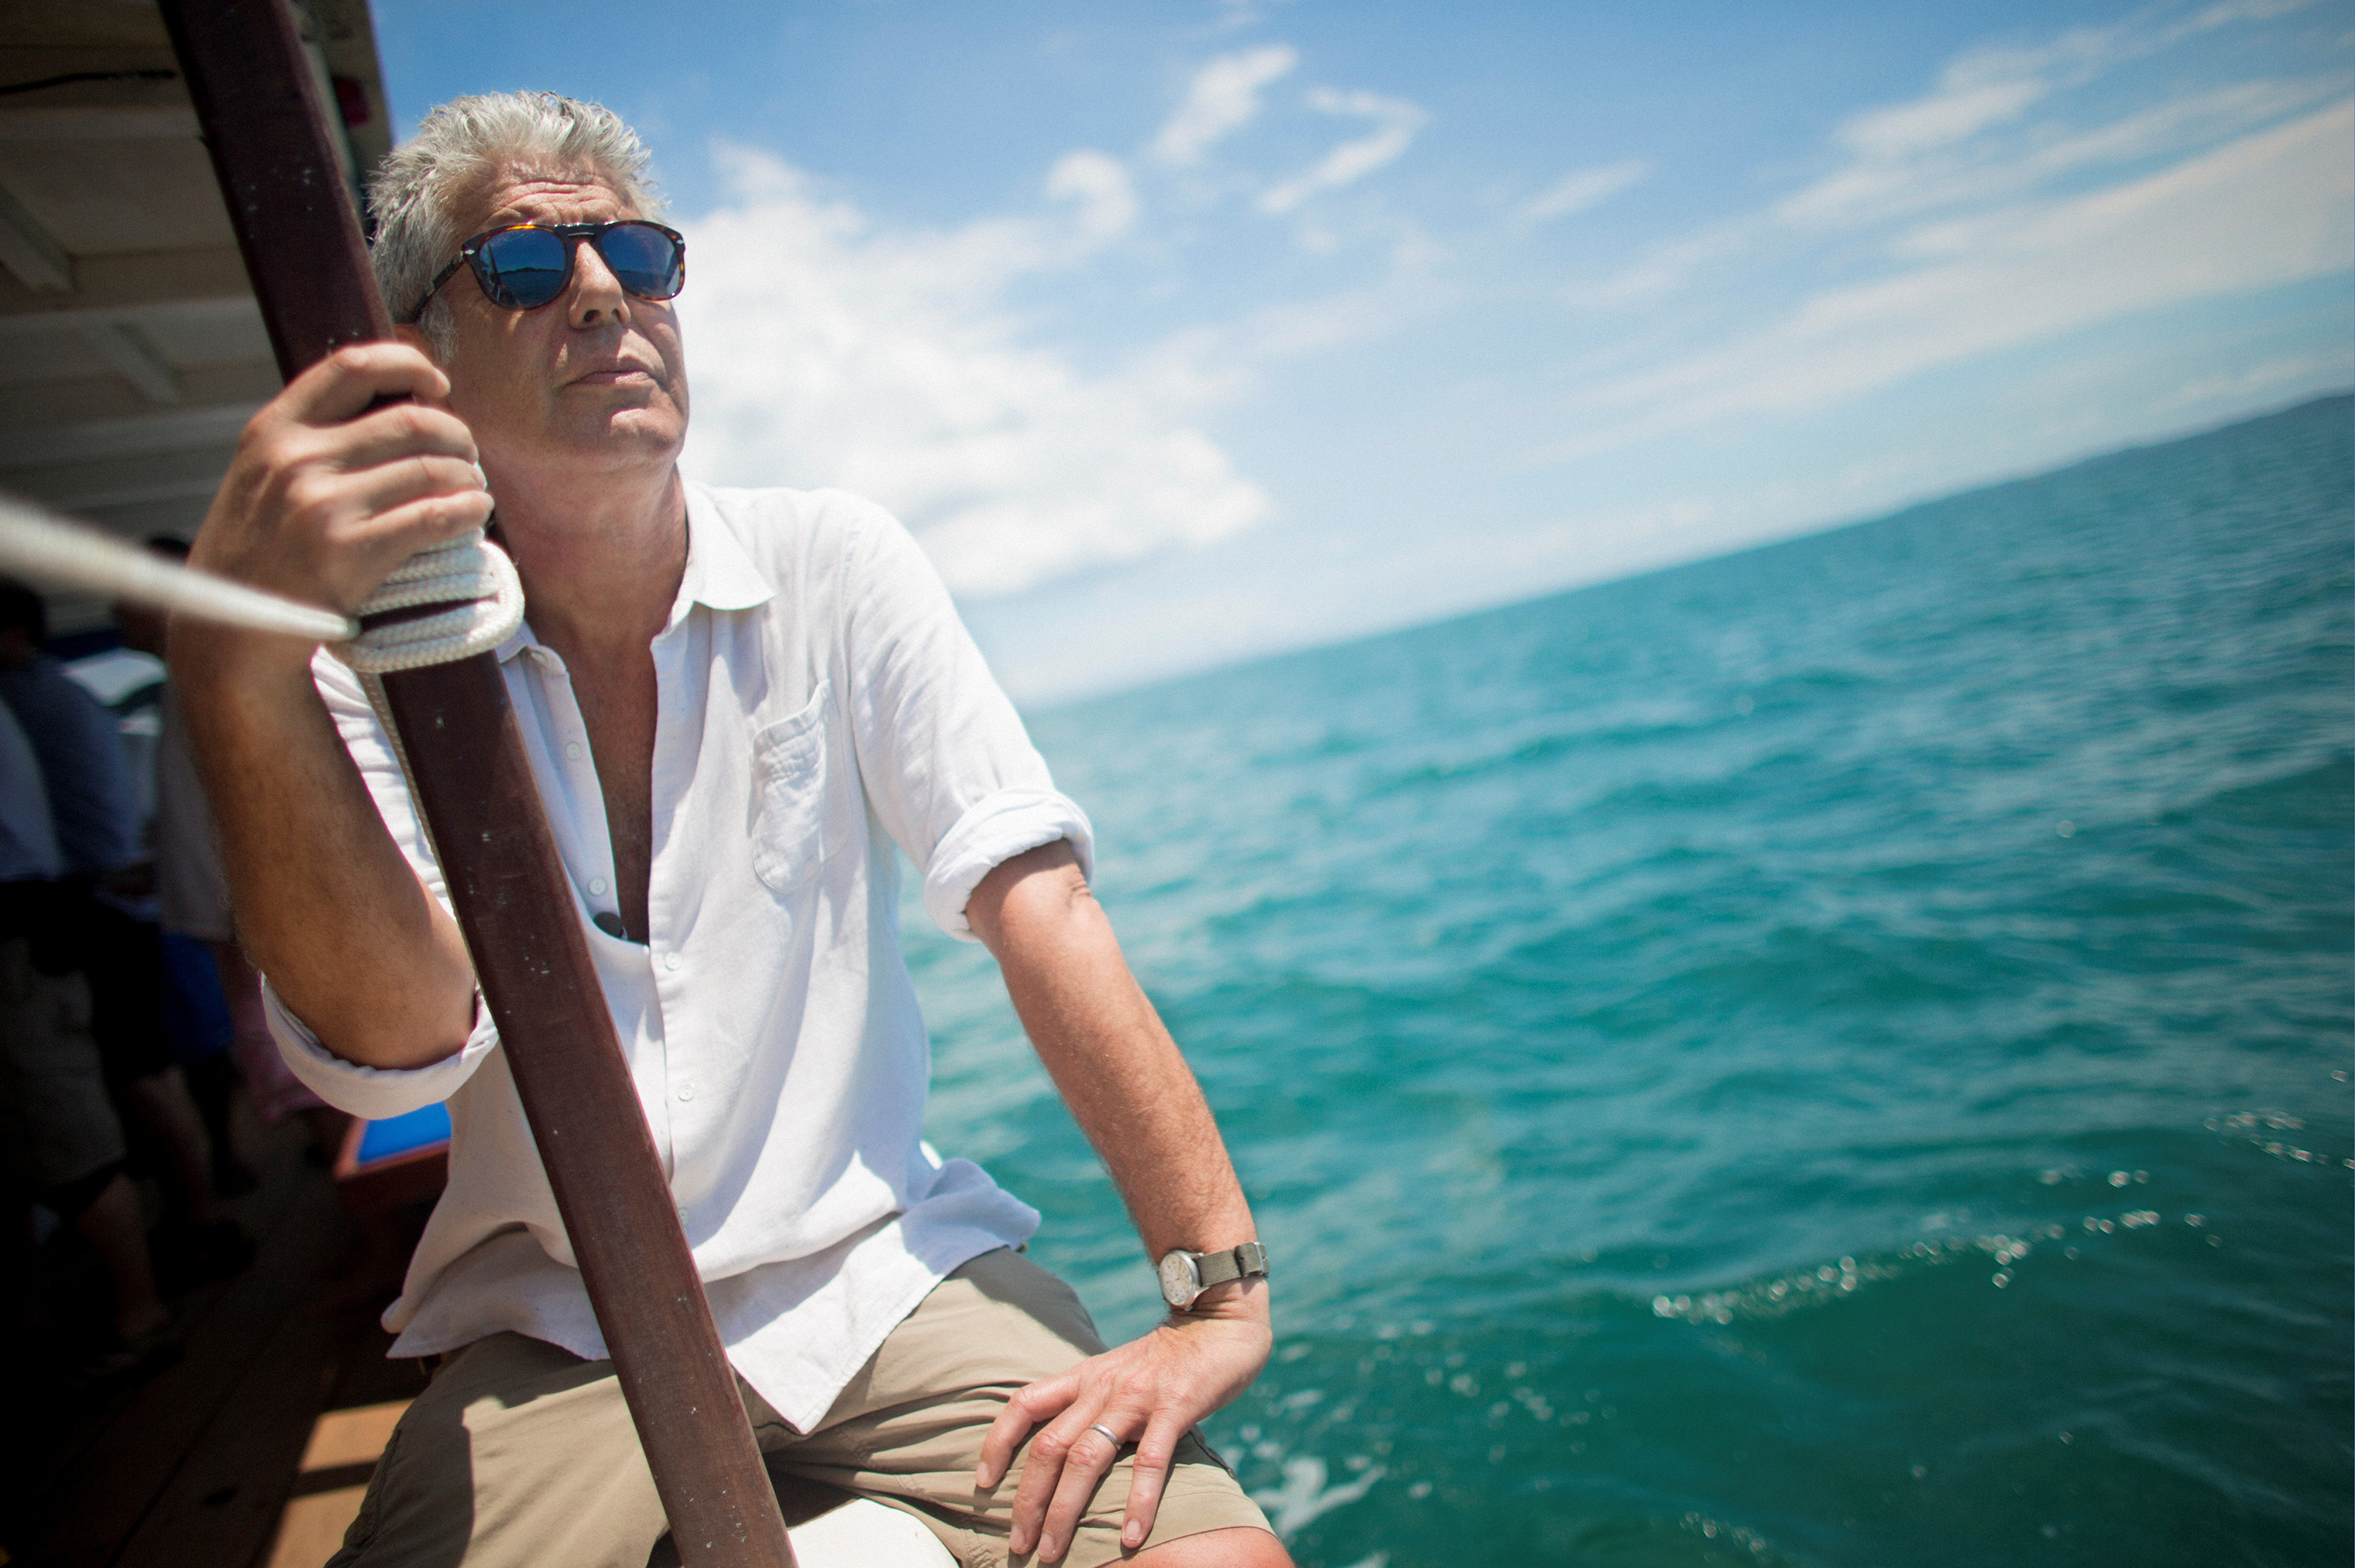 Anthony Bourdain travels in Salvador, Brazil, for CNN's Anthony Bourdain: Parts Unknown in 2014.